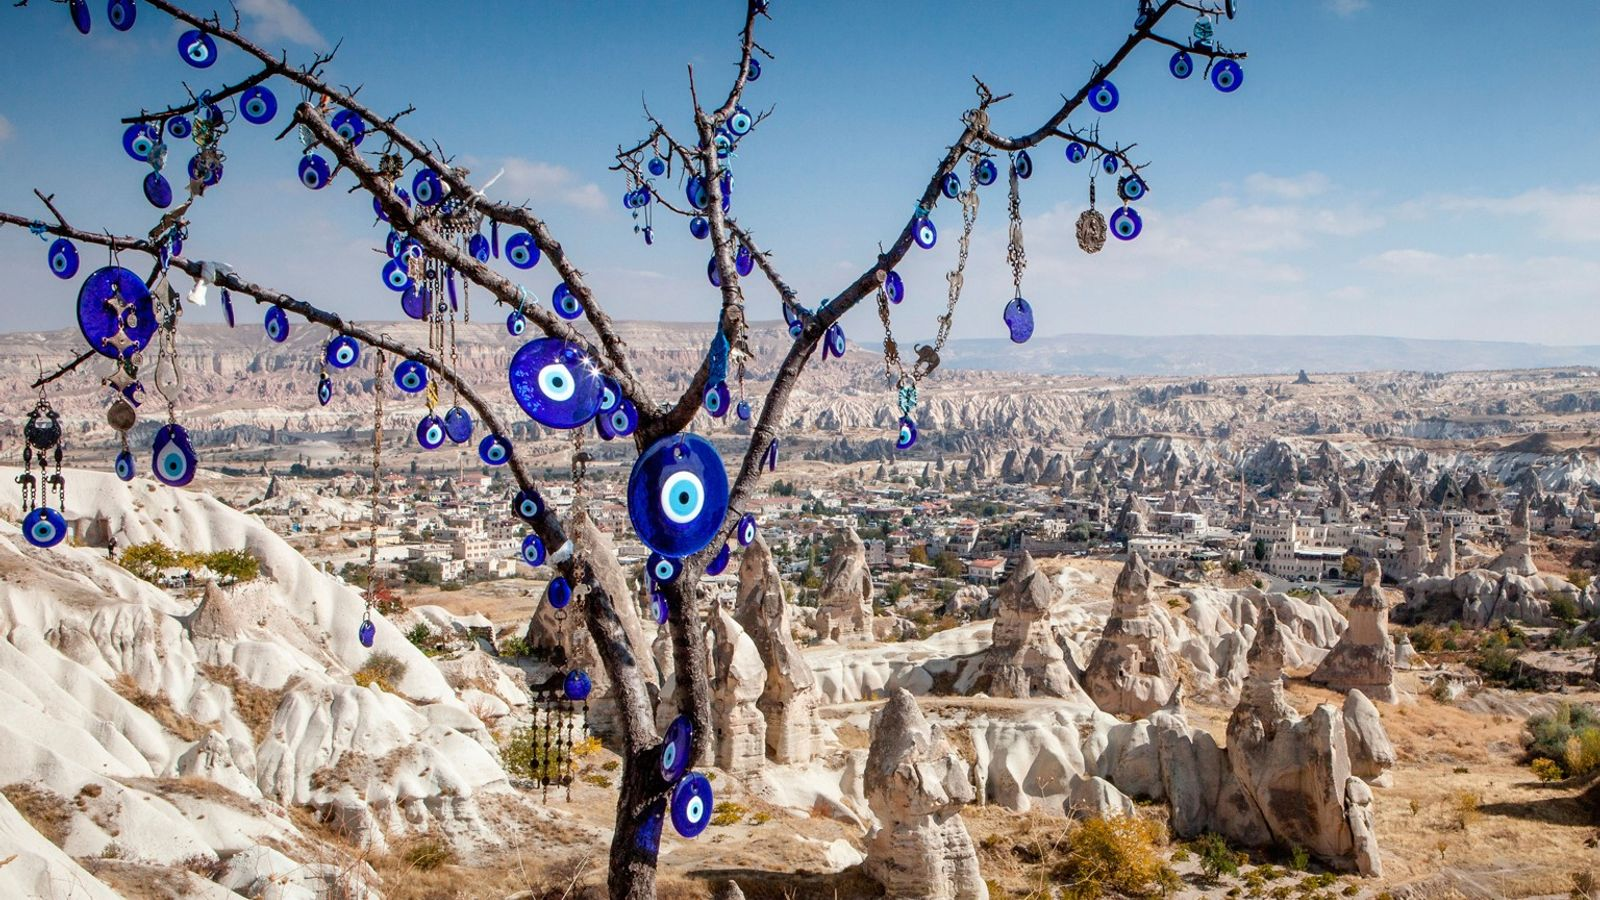 Outside Cappadocia, Turkey, blue glass evil-eye charms decorate a tree. The bad-luck repelling symbols are displayed ...